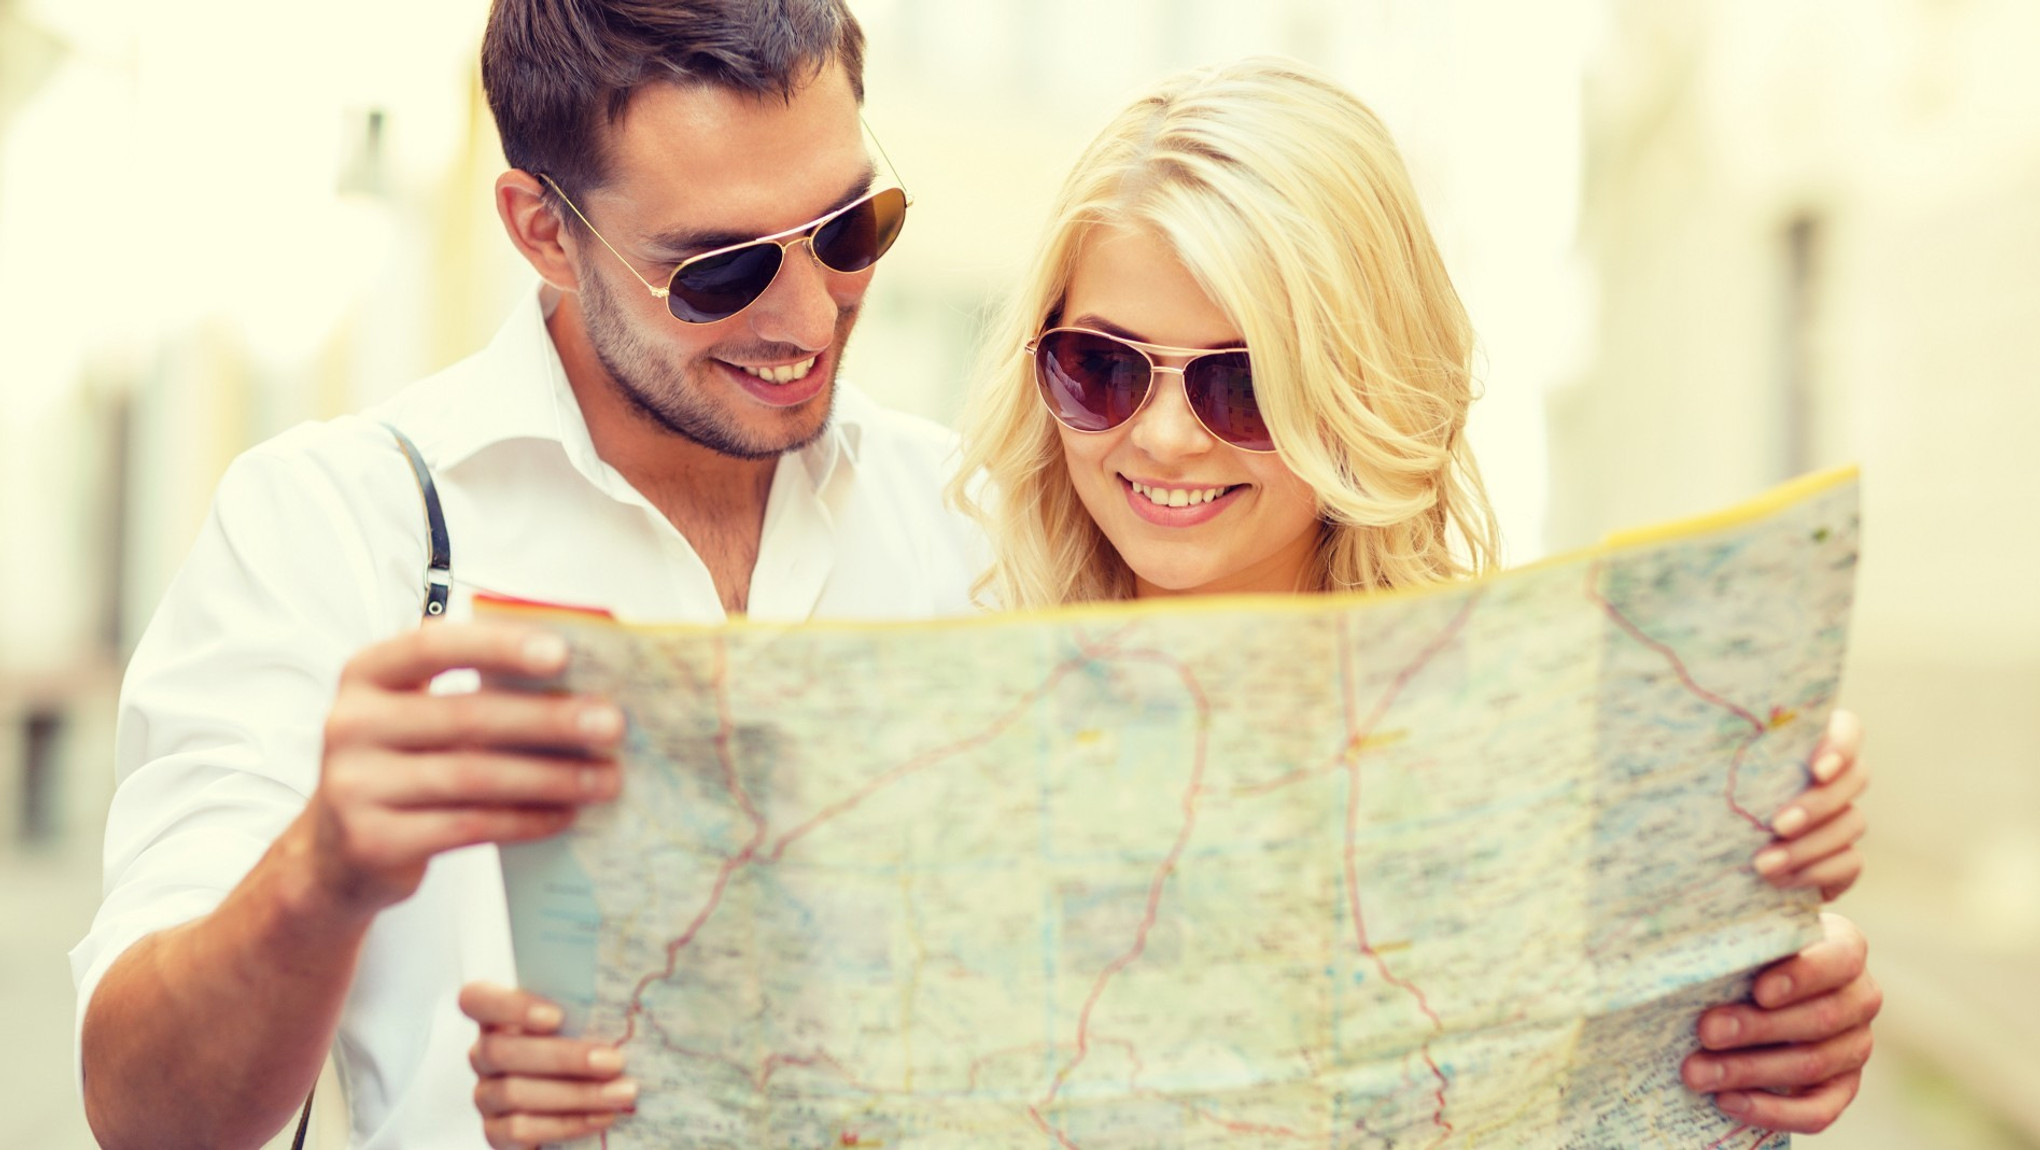 Second Honeymoon 101 What To Do And Where To Go Bridestory Blog